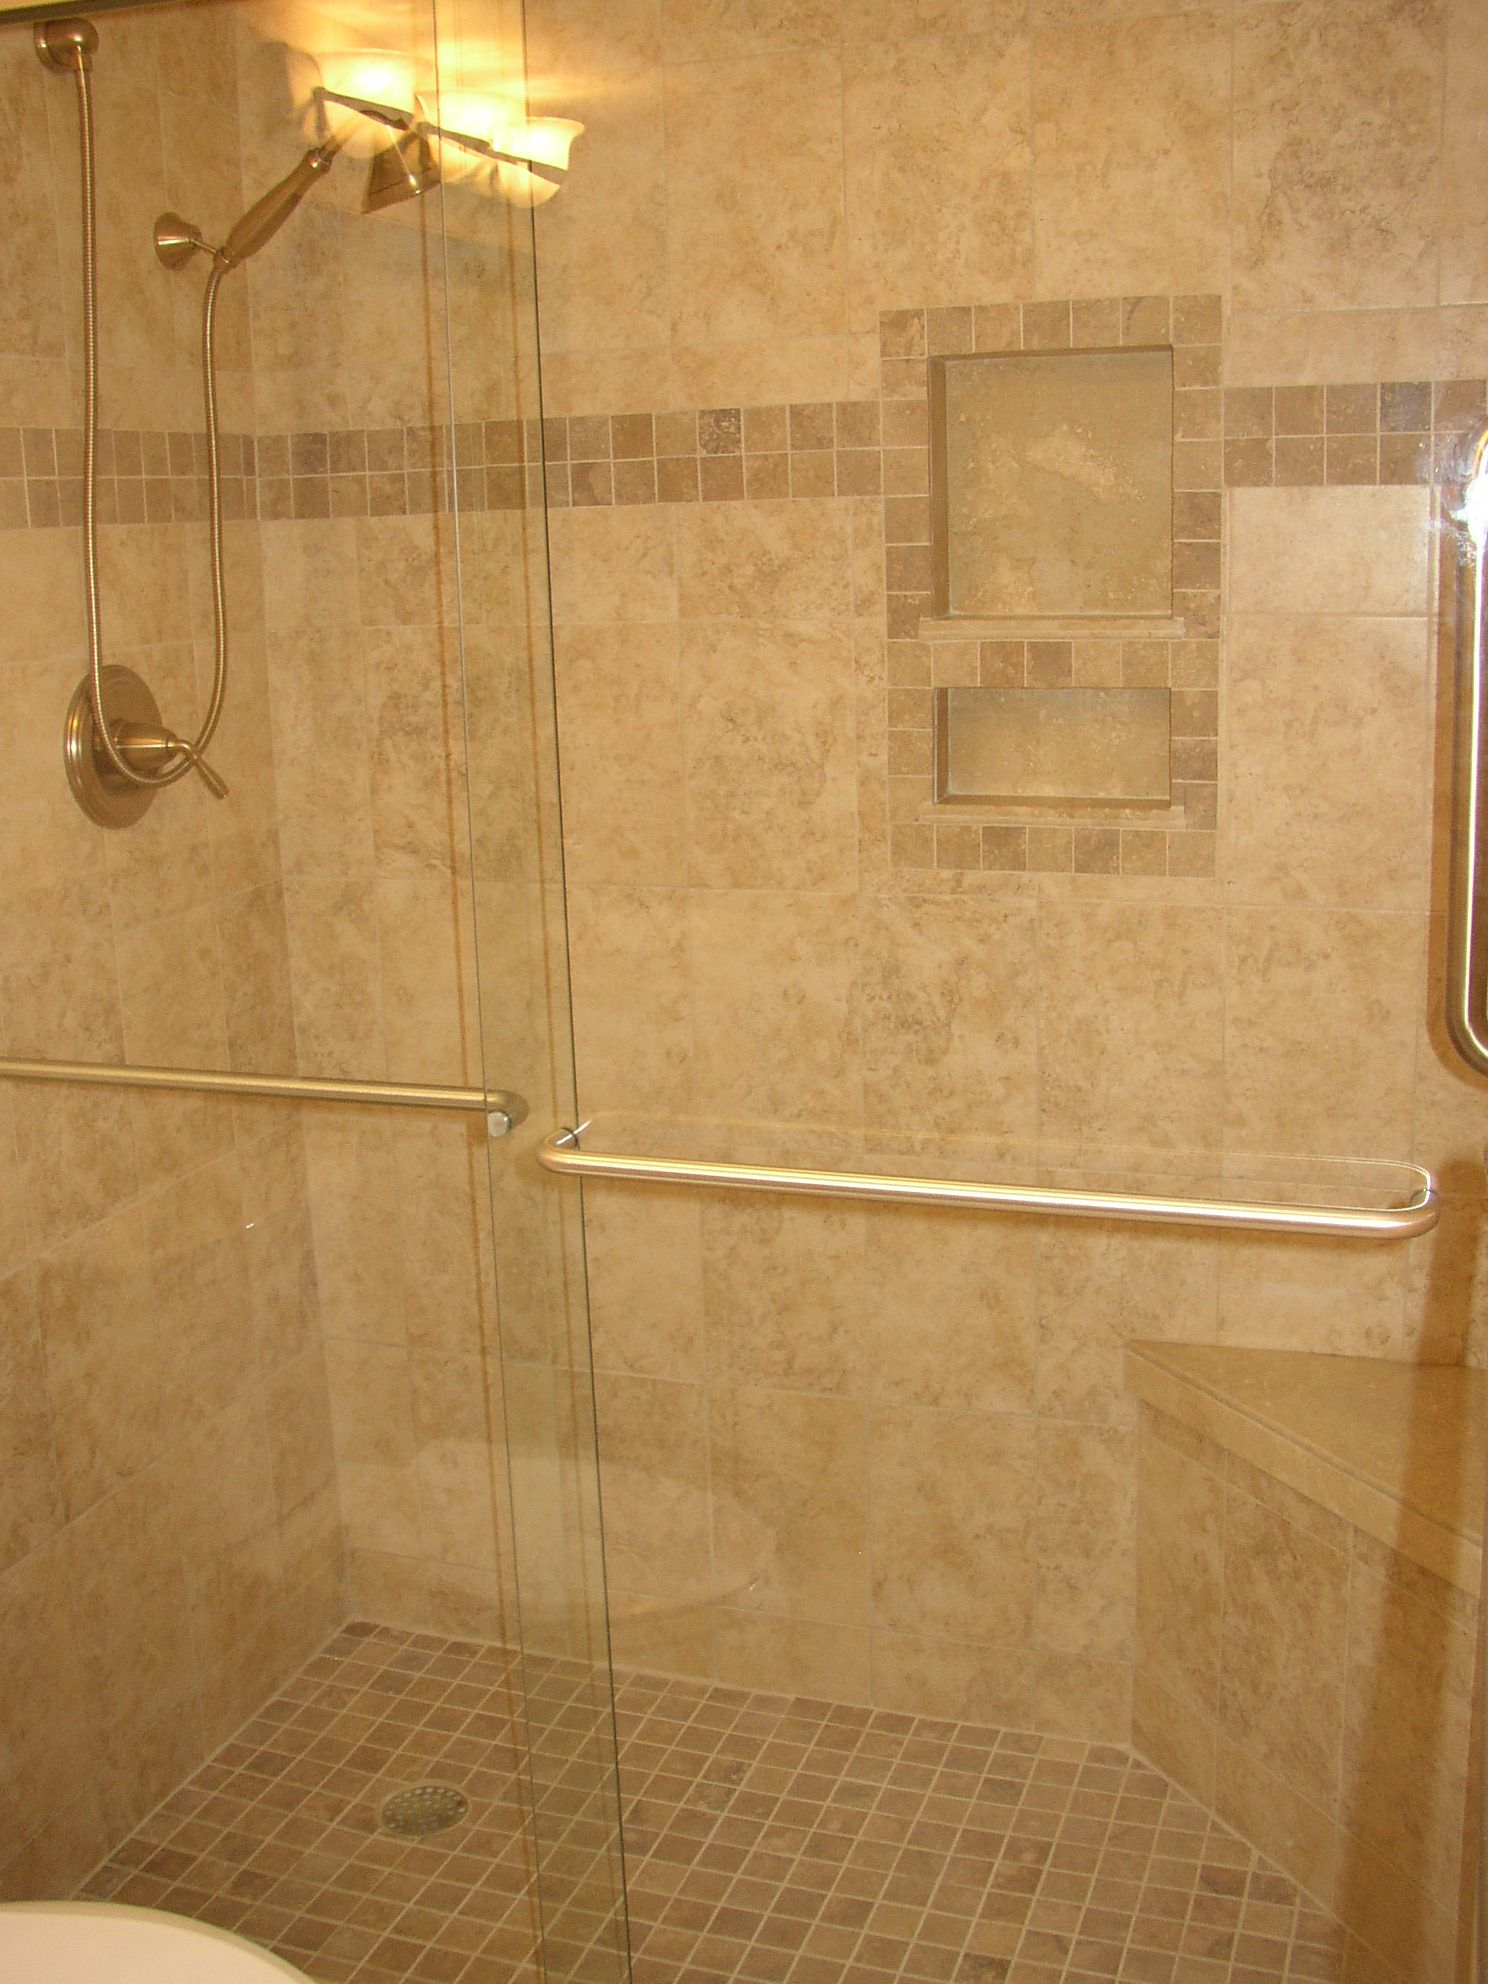 shower lights niches for shower bath storage are a basic element shower lights niches for shower bath storage are a basic element of our renovations